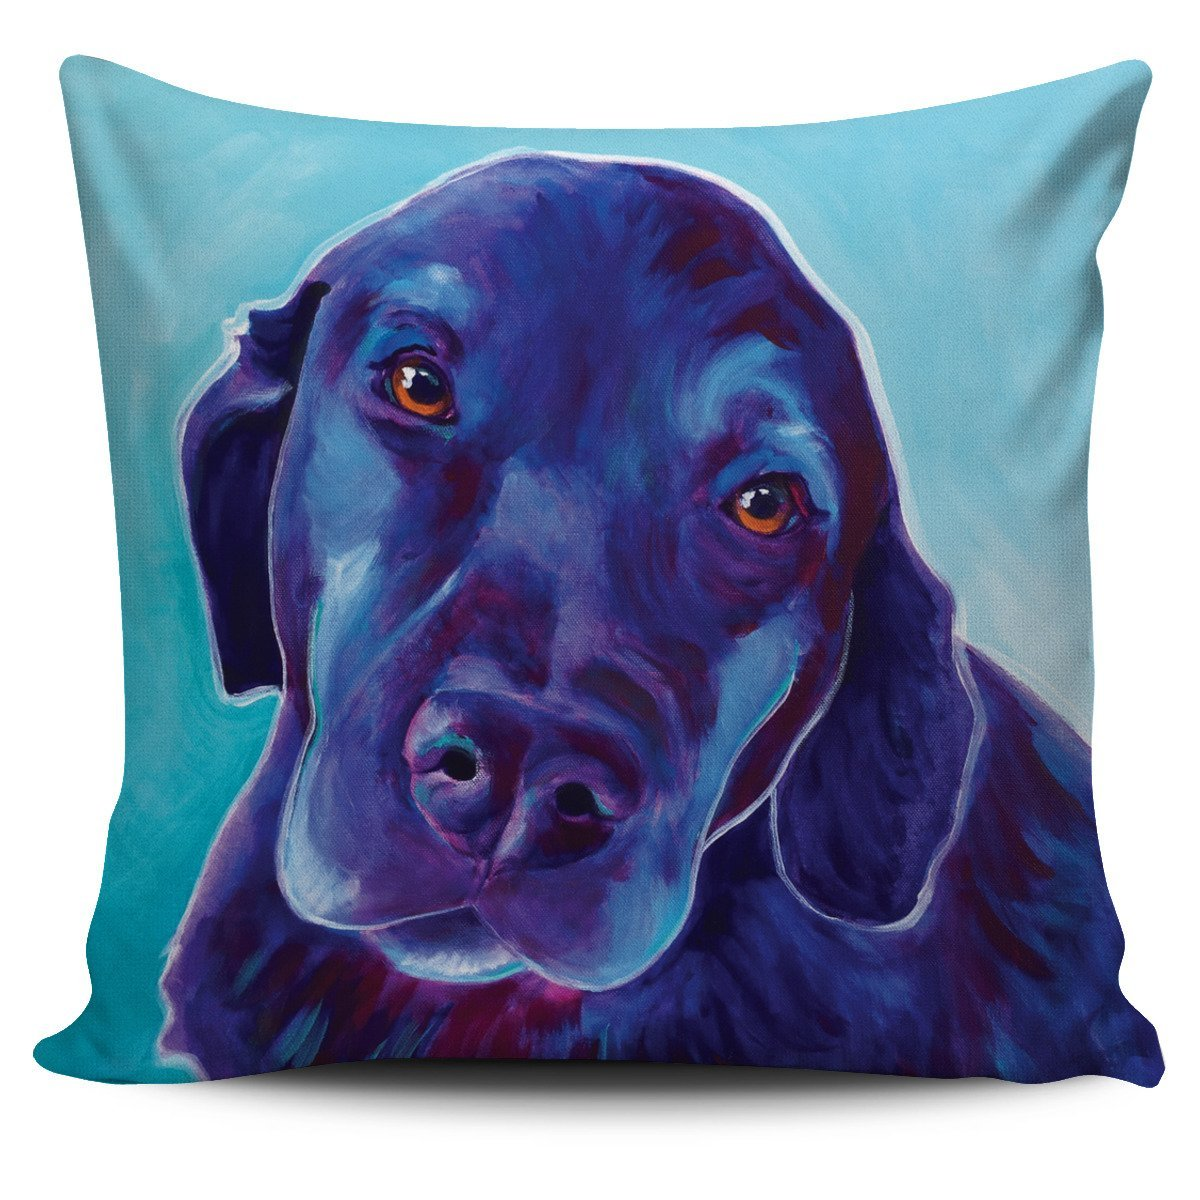 Pacific Pike -  Labrador Pillow Cover  -  Labrador Pillow Cover  -